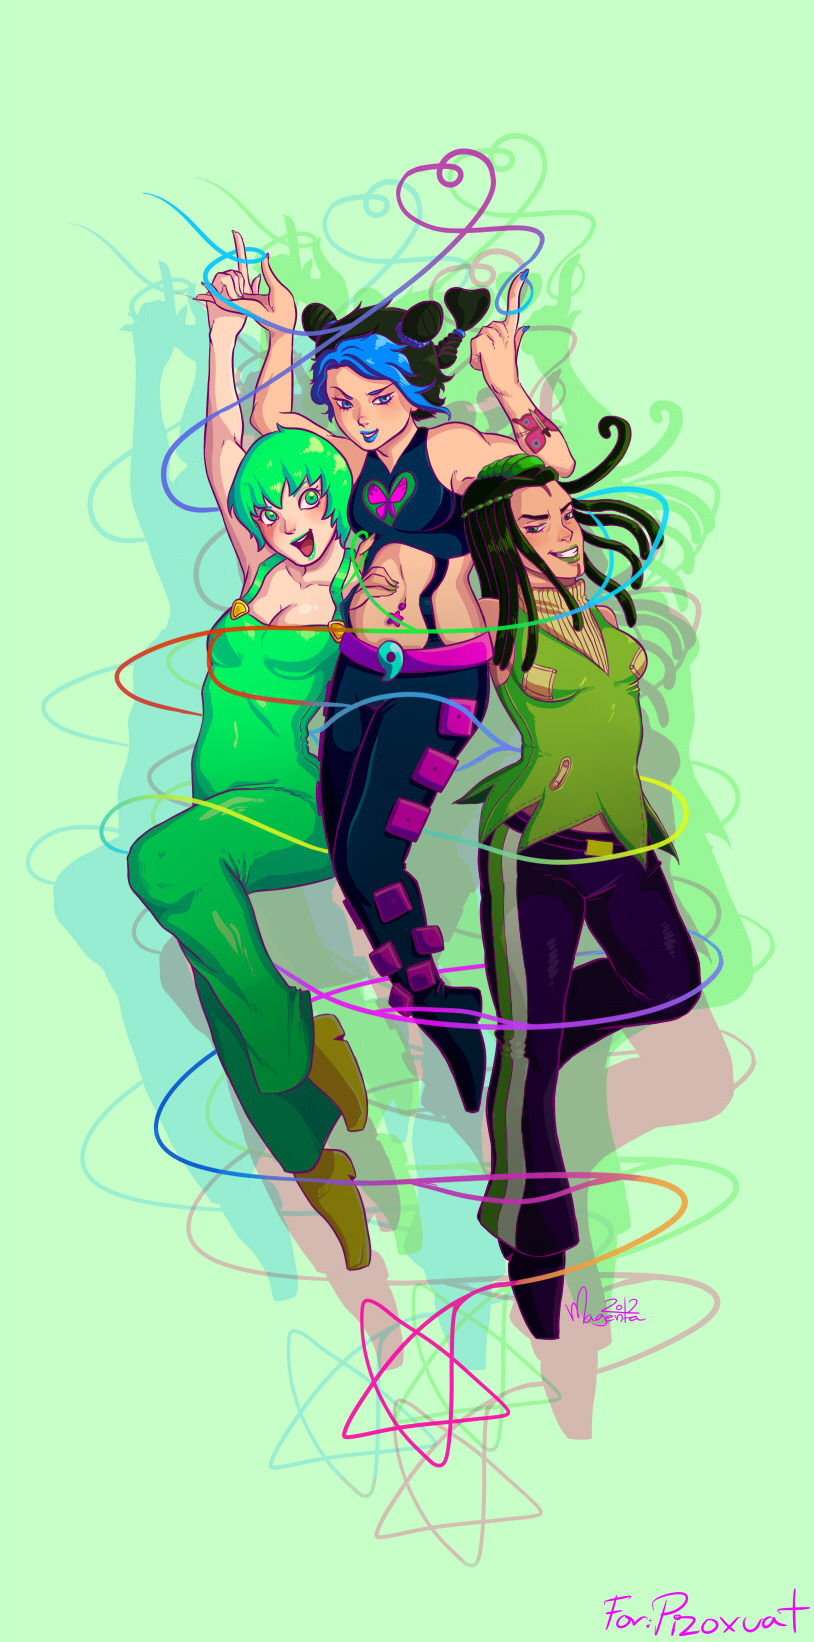 This is my Jojo Secret Santa gift for Pizoxuat! : D